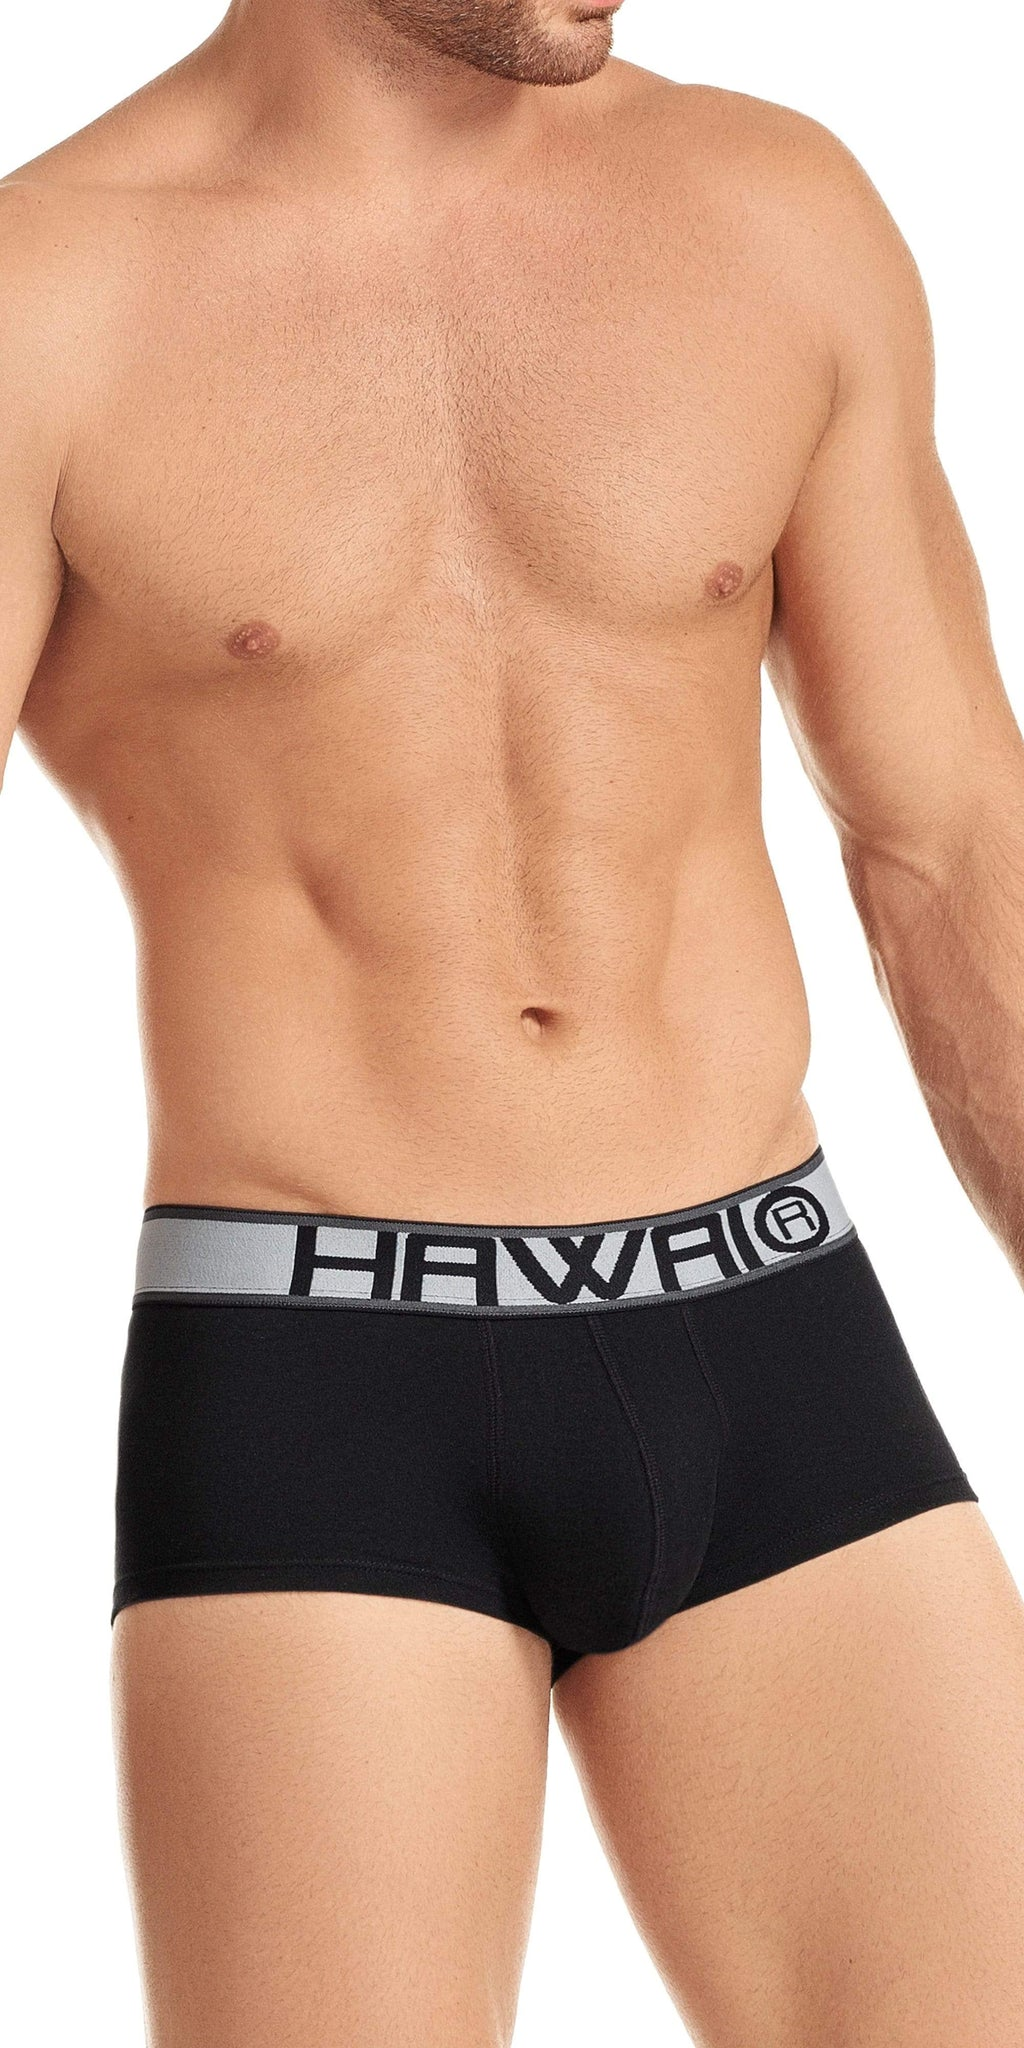 Hawai 41961 Briefs Black